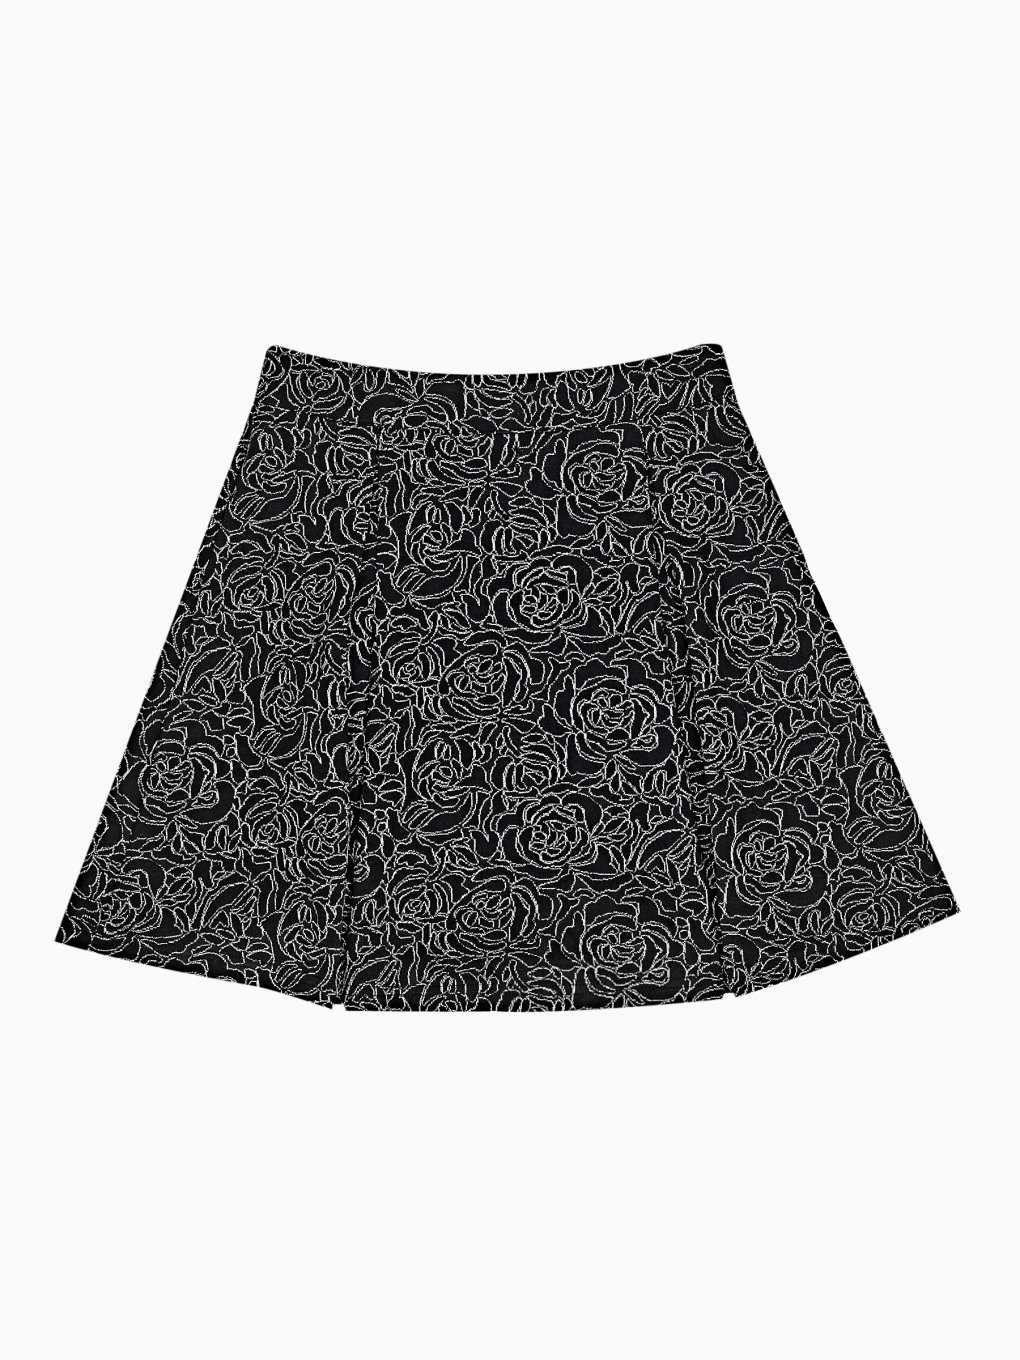 Floral patterned skater skirt with metallic fibre